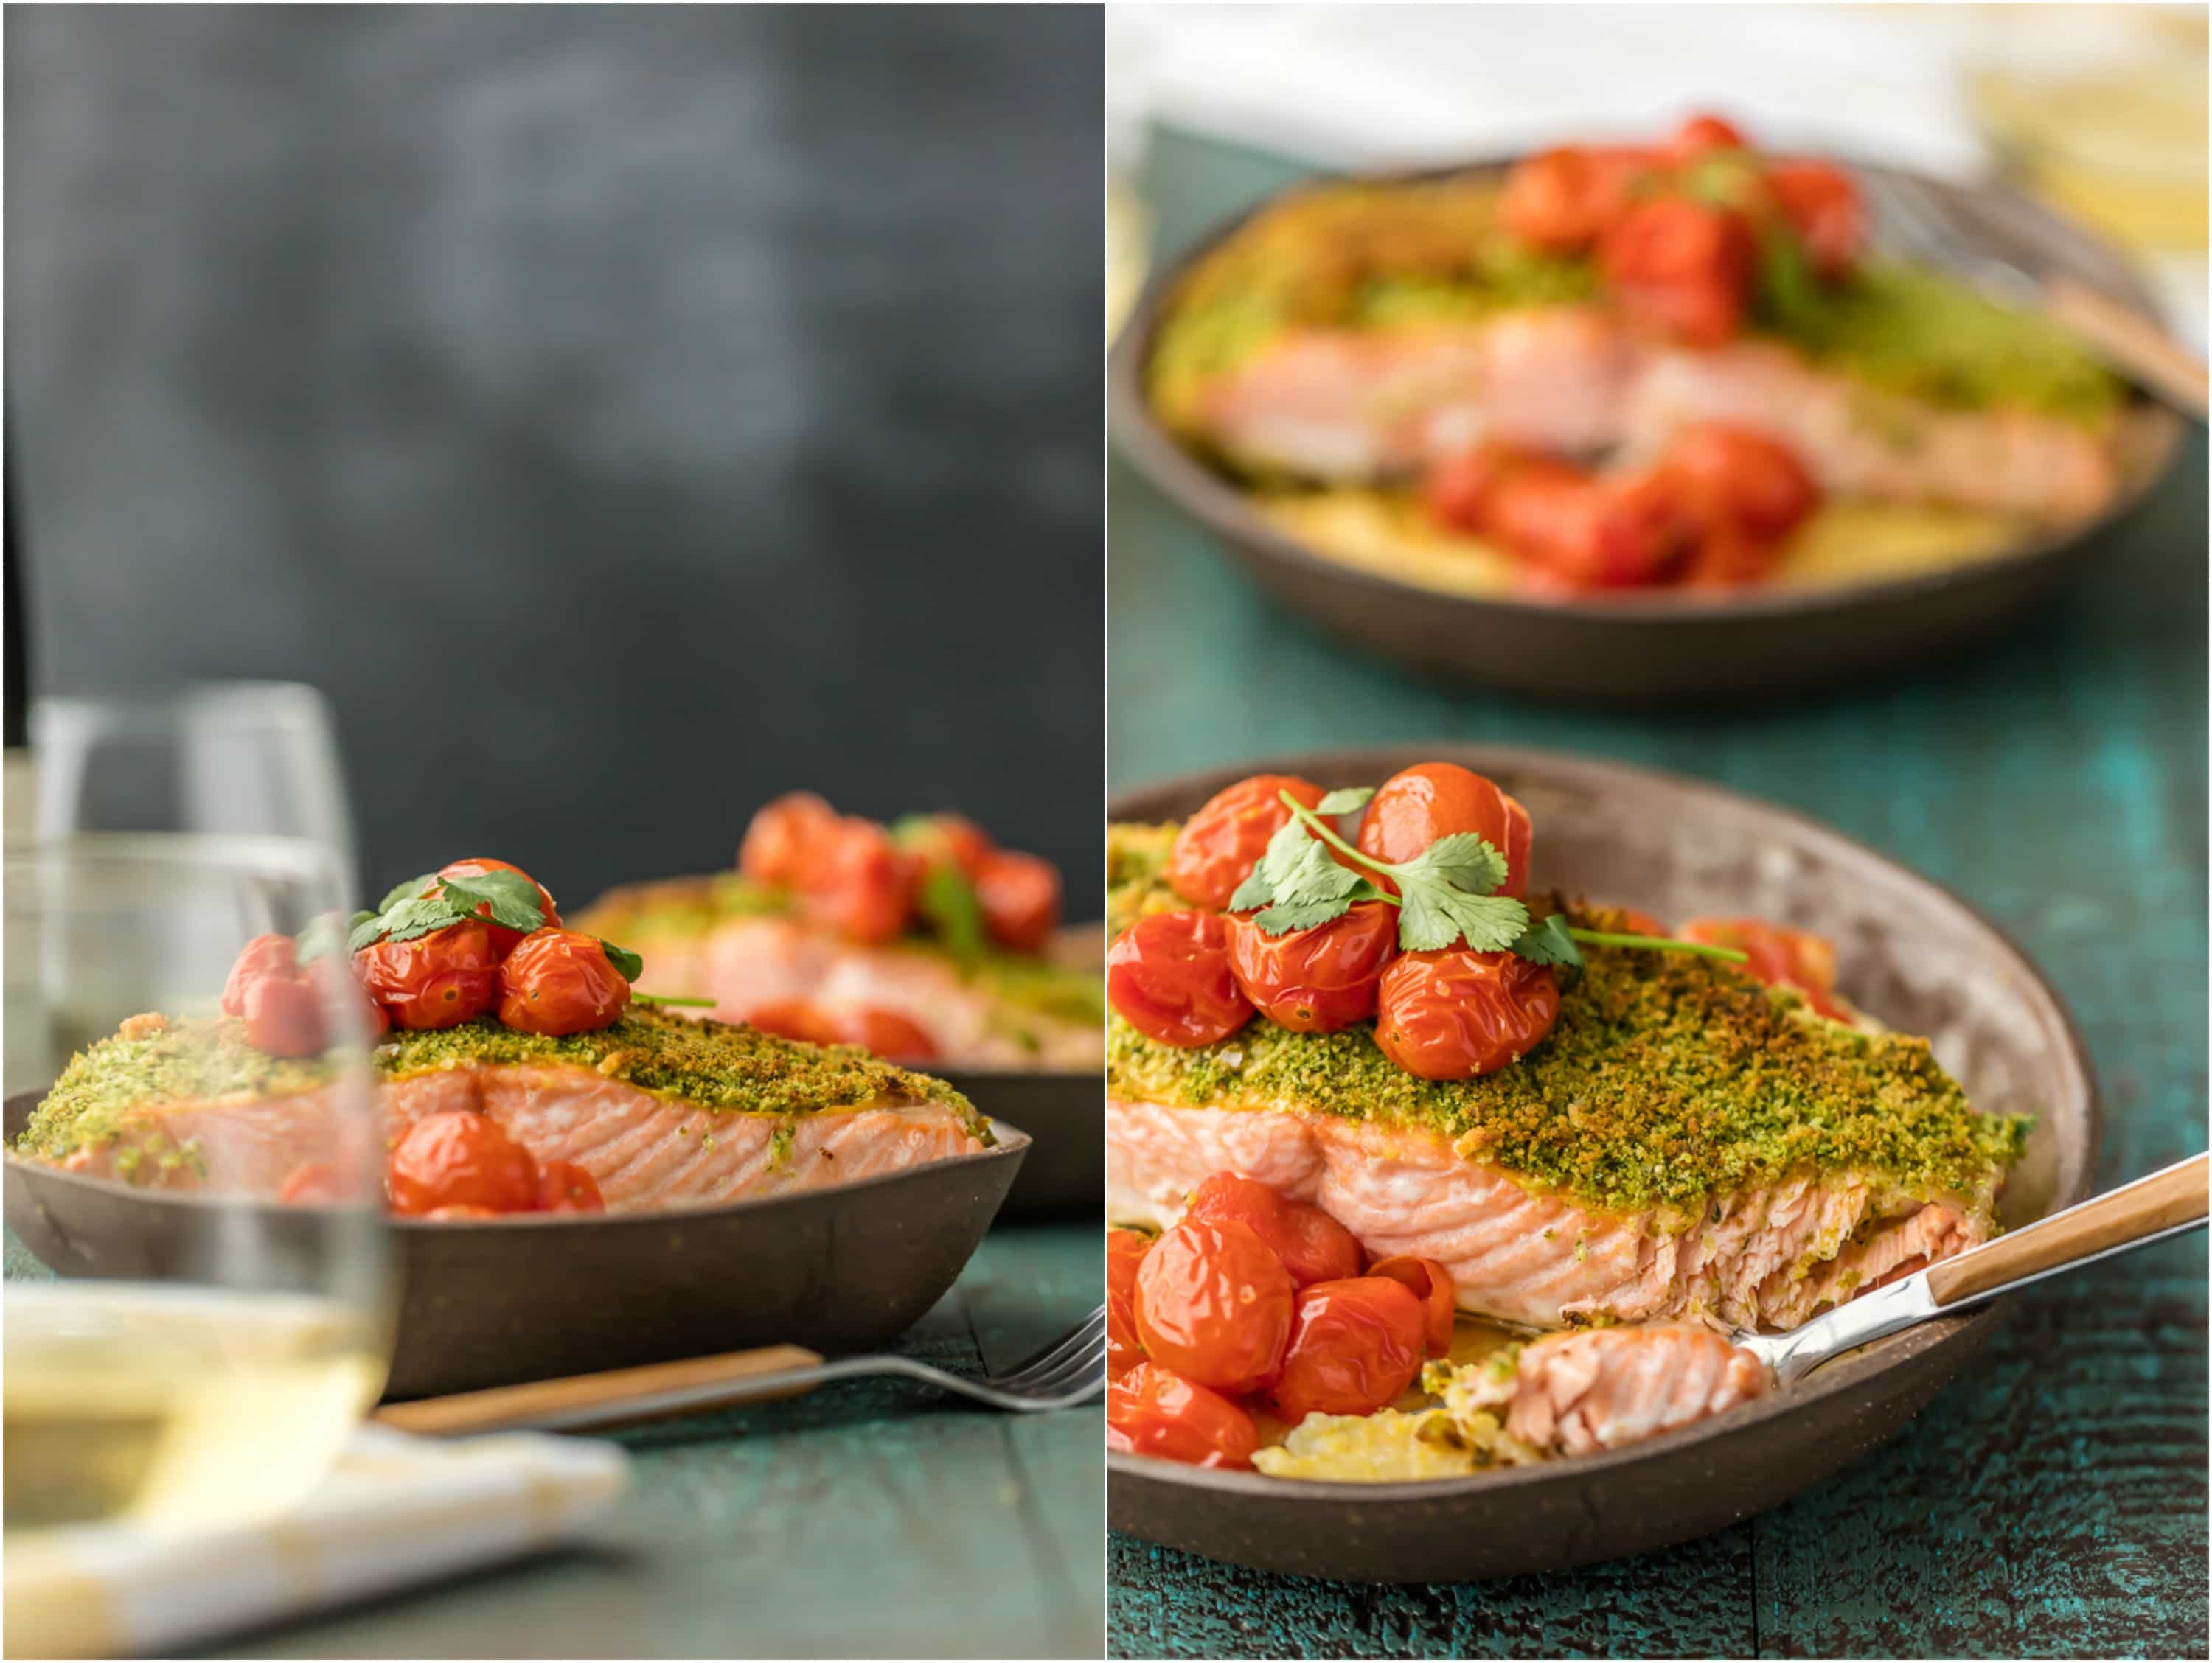 Herb Crusted Salmon with Goat Cheese Polenta is our favorite easy healthy recipe! So much flavor in the basil crusted salmon, tomatoes, and creamy goat cheese polenta! Delicious seafood recipe!